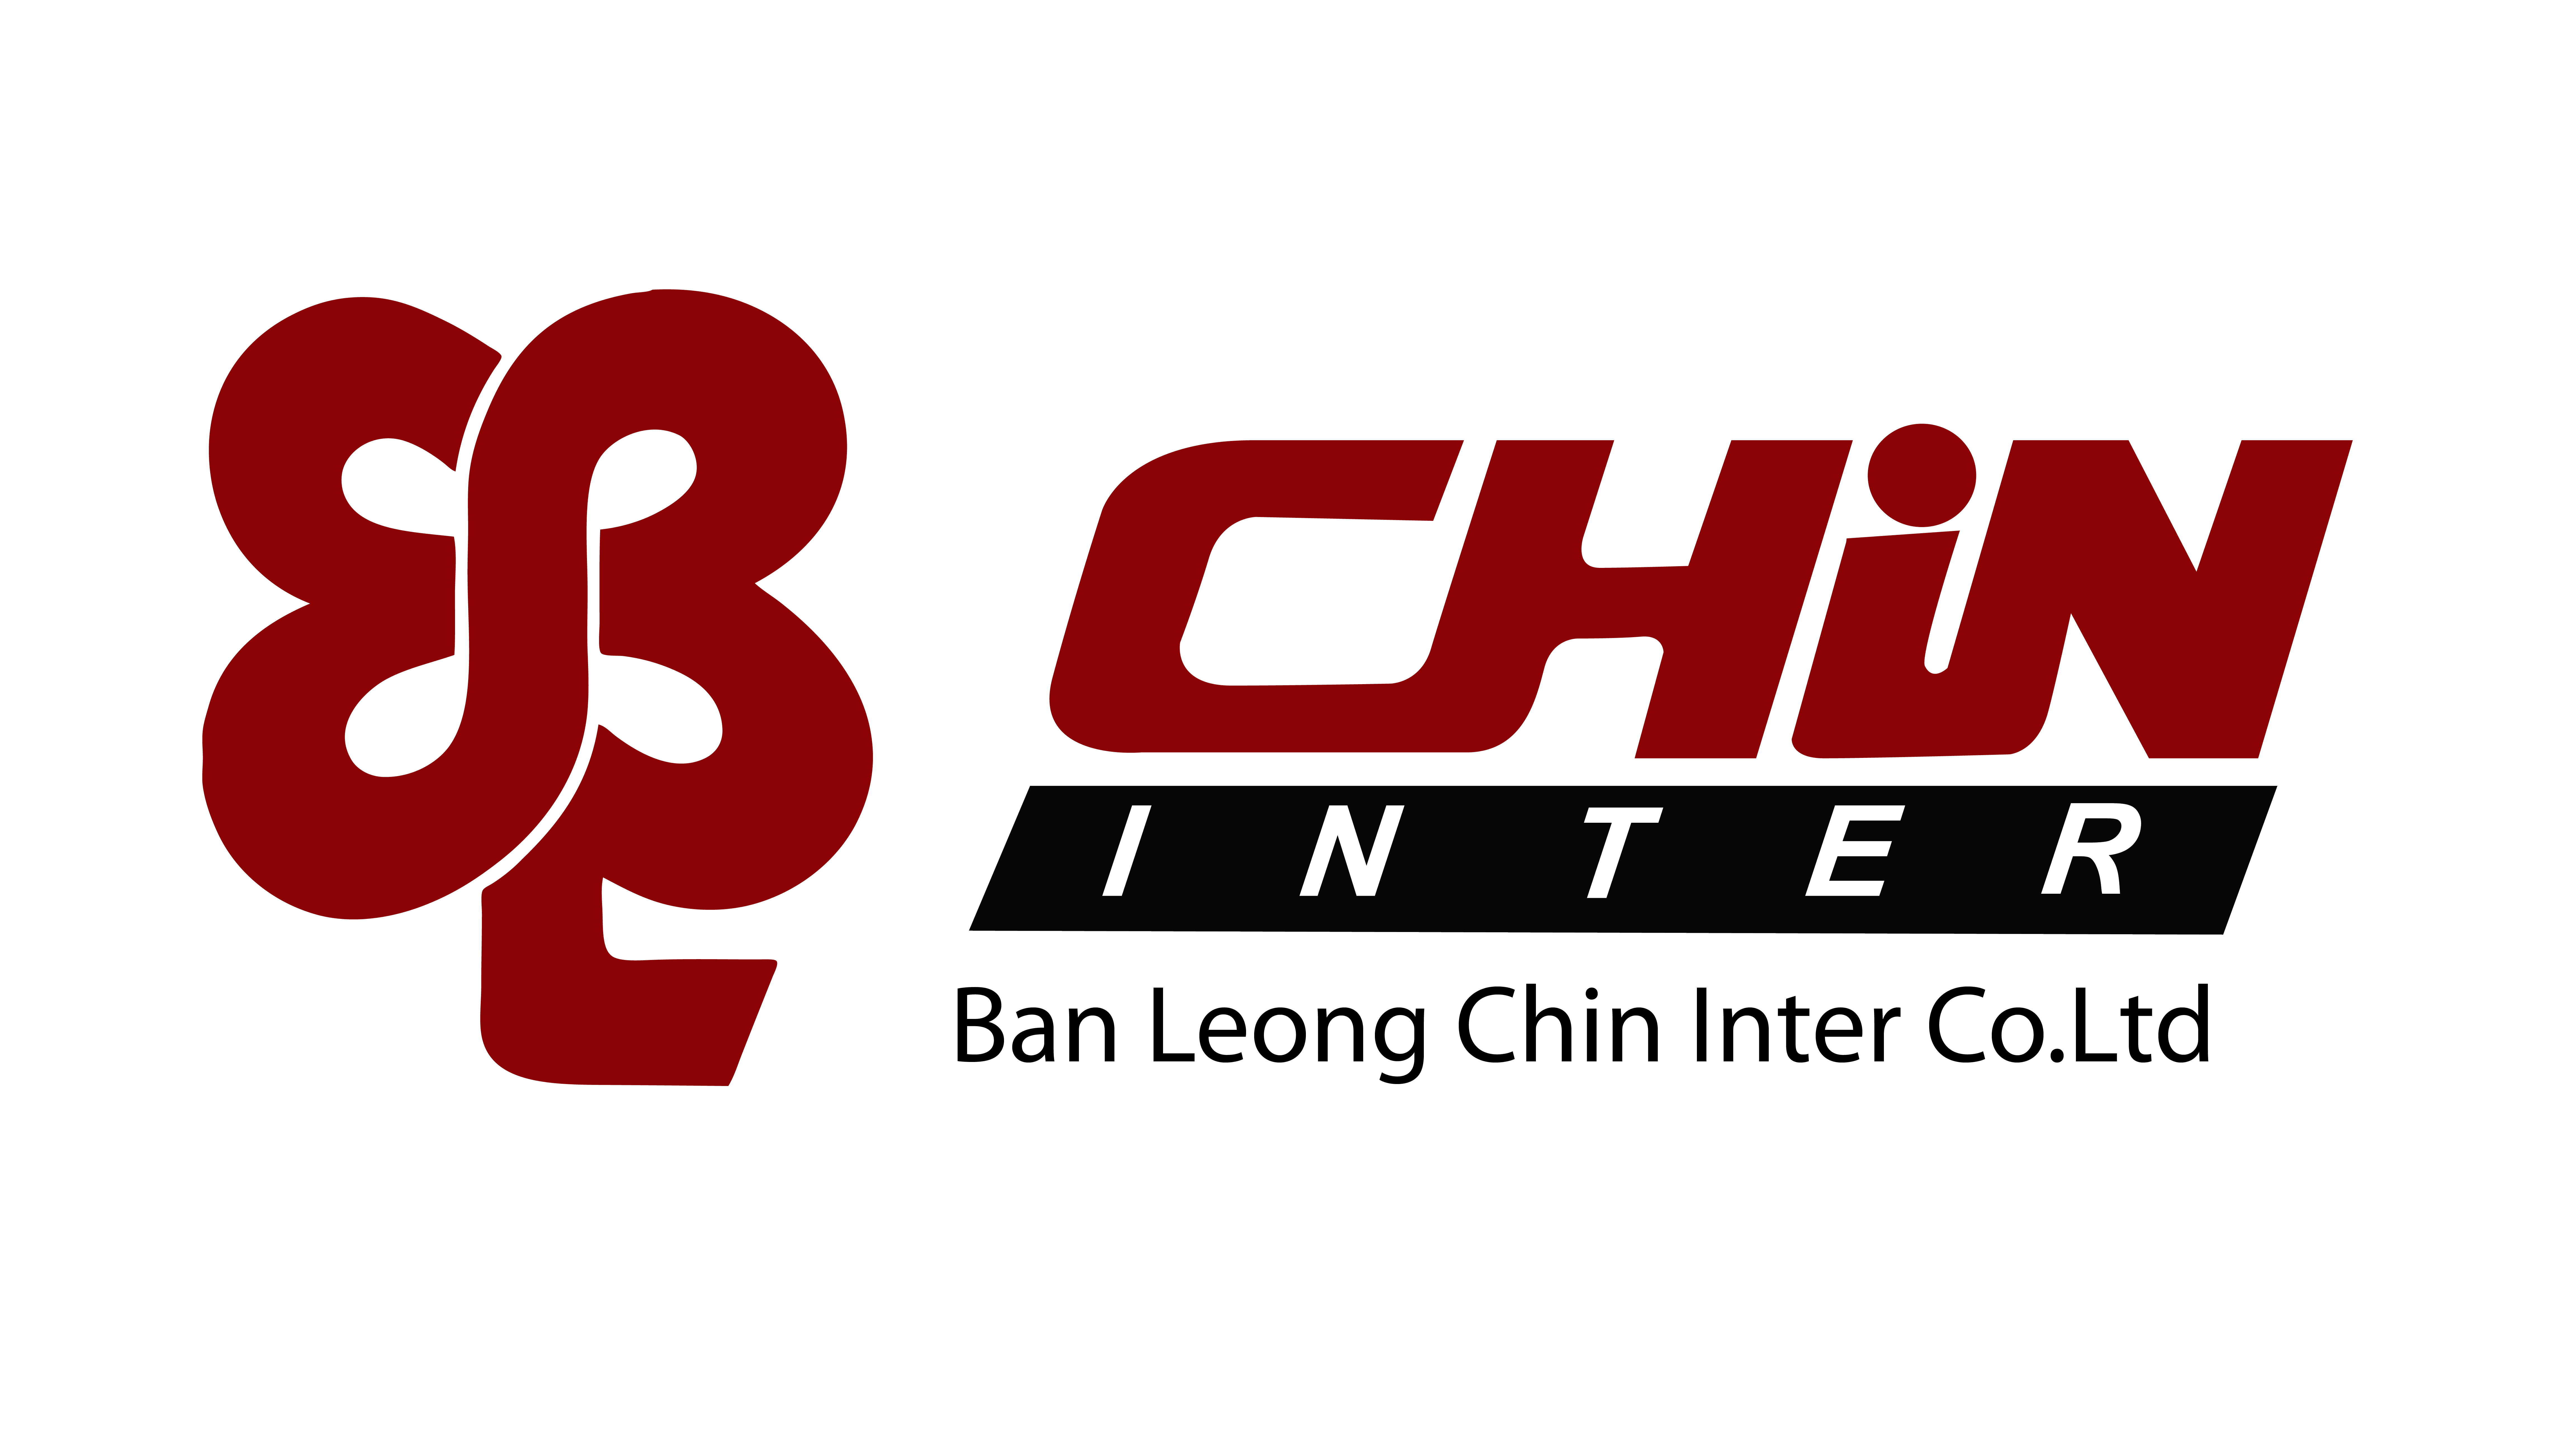 Ban Leong Chin Inter Co. Ltd.